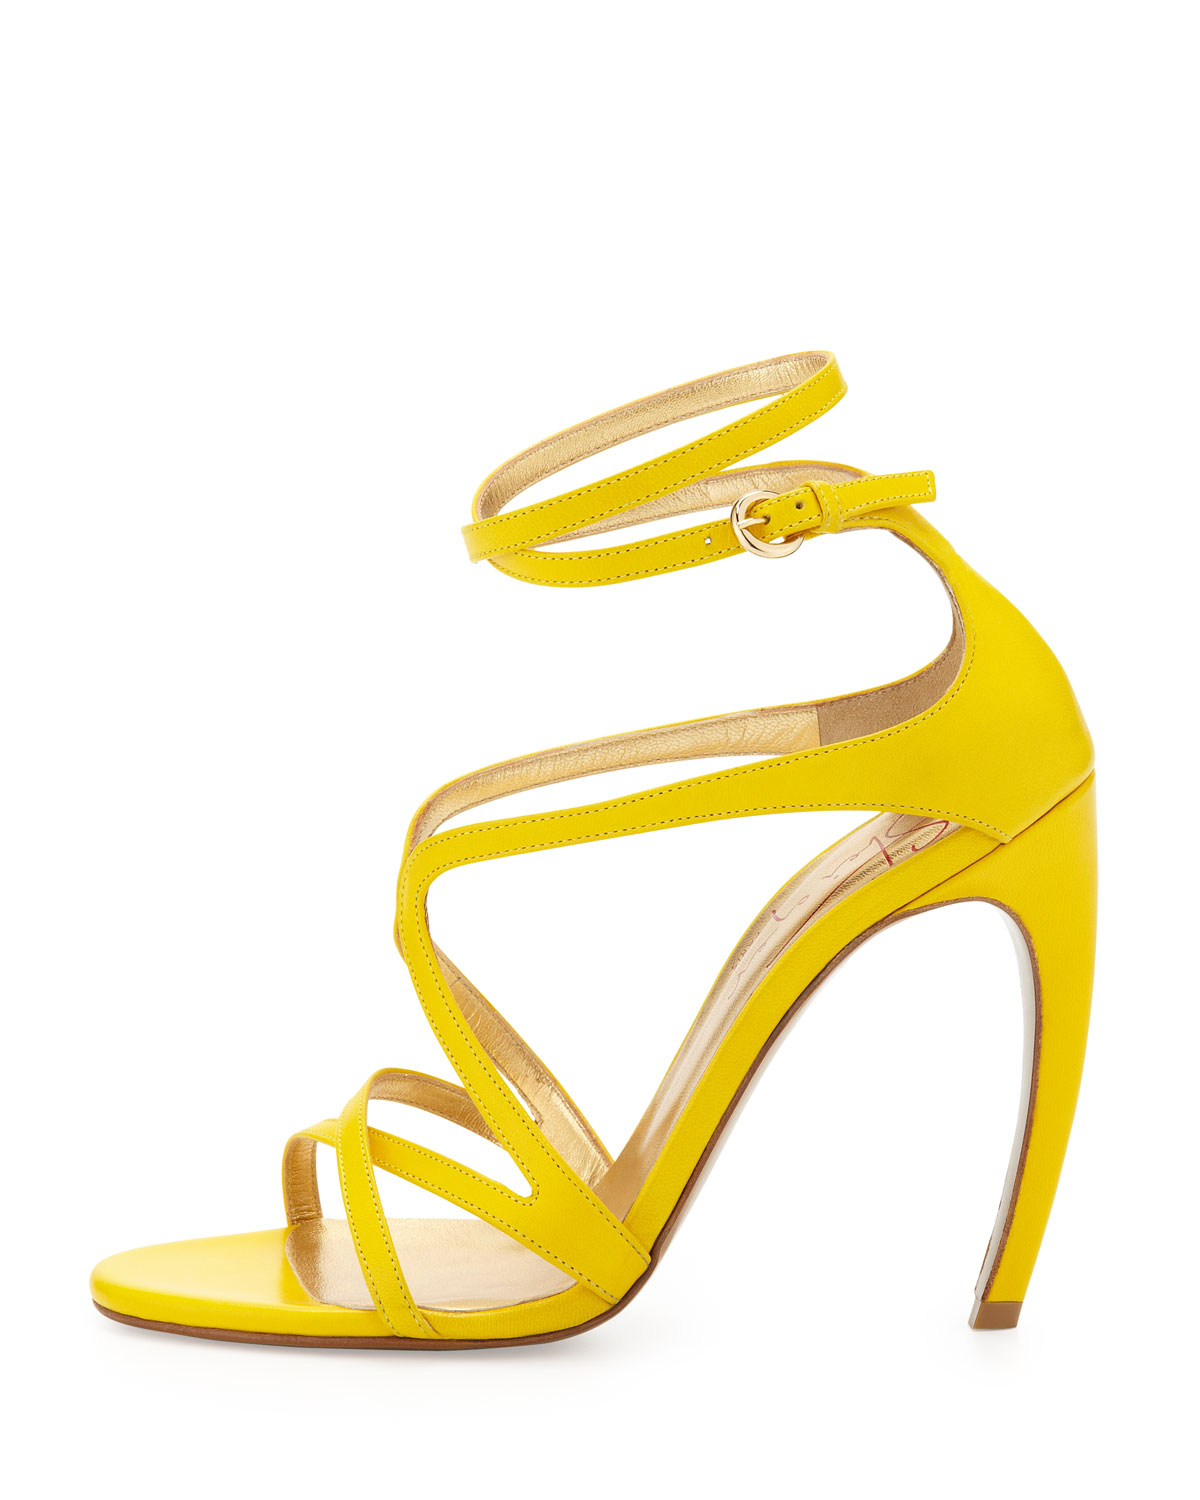 Walter steiger Strappy Leather Convexheel Sandal in Yellow | Lyst